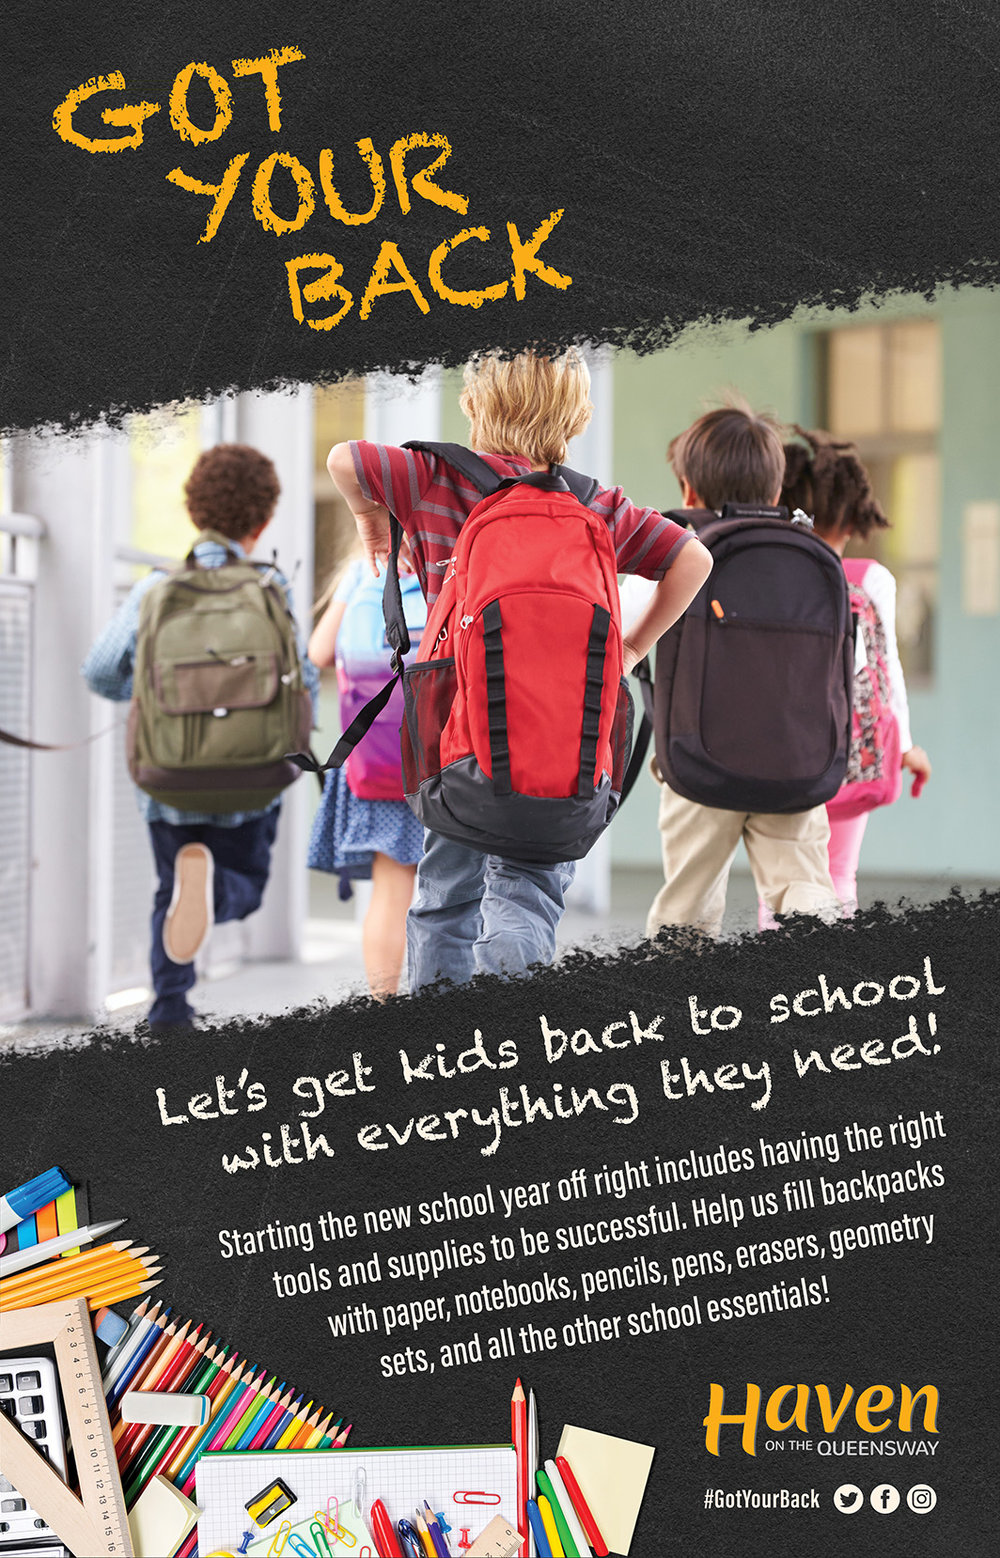 Our annual GOT YOUR BACK drive is beginning!    Help us fill backpacks with school supplies for students from Grades JK through 8 so they can start the new school year off right!